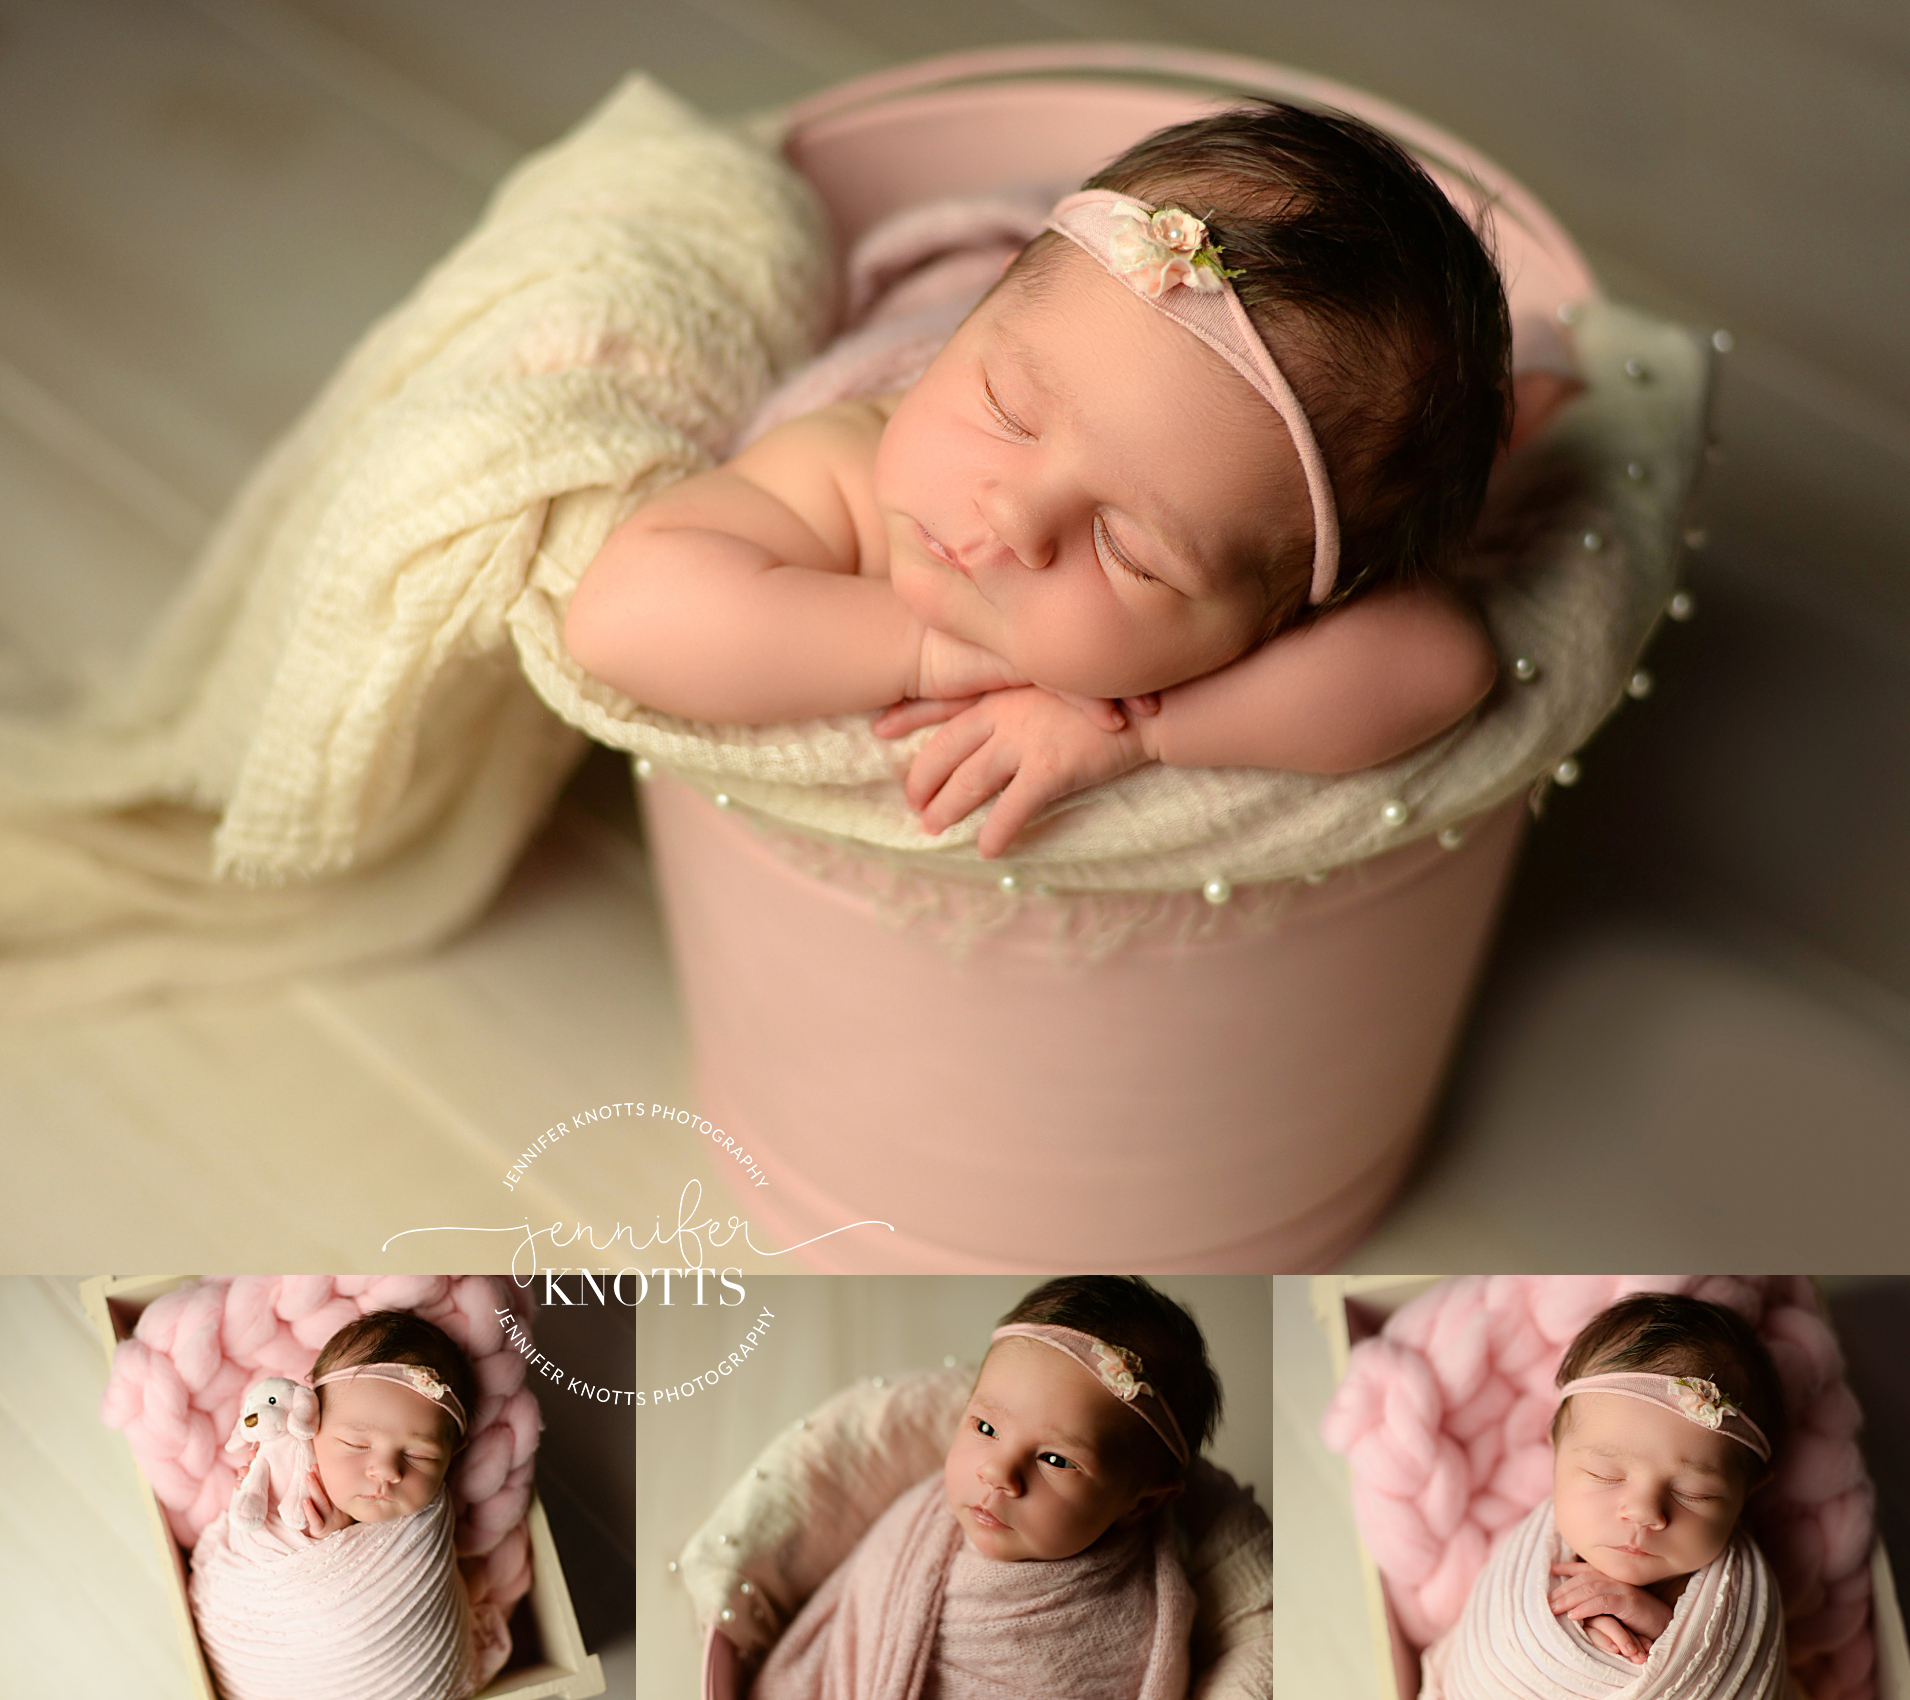 Newborn girl sleeps on pink and cream bucket during Wilmington photography session